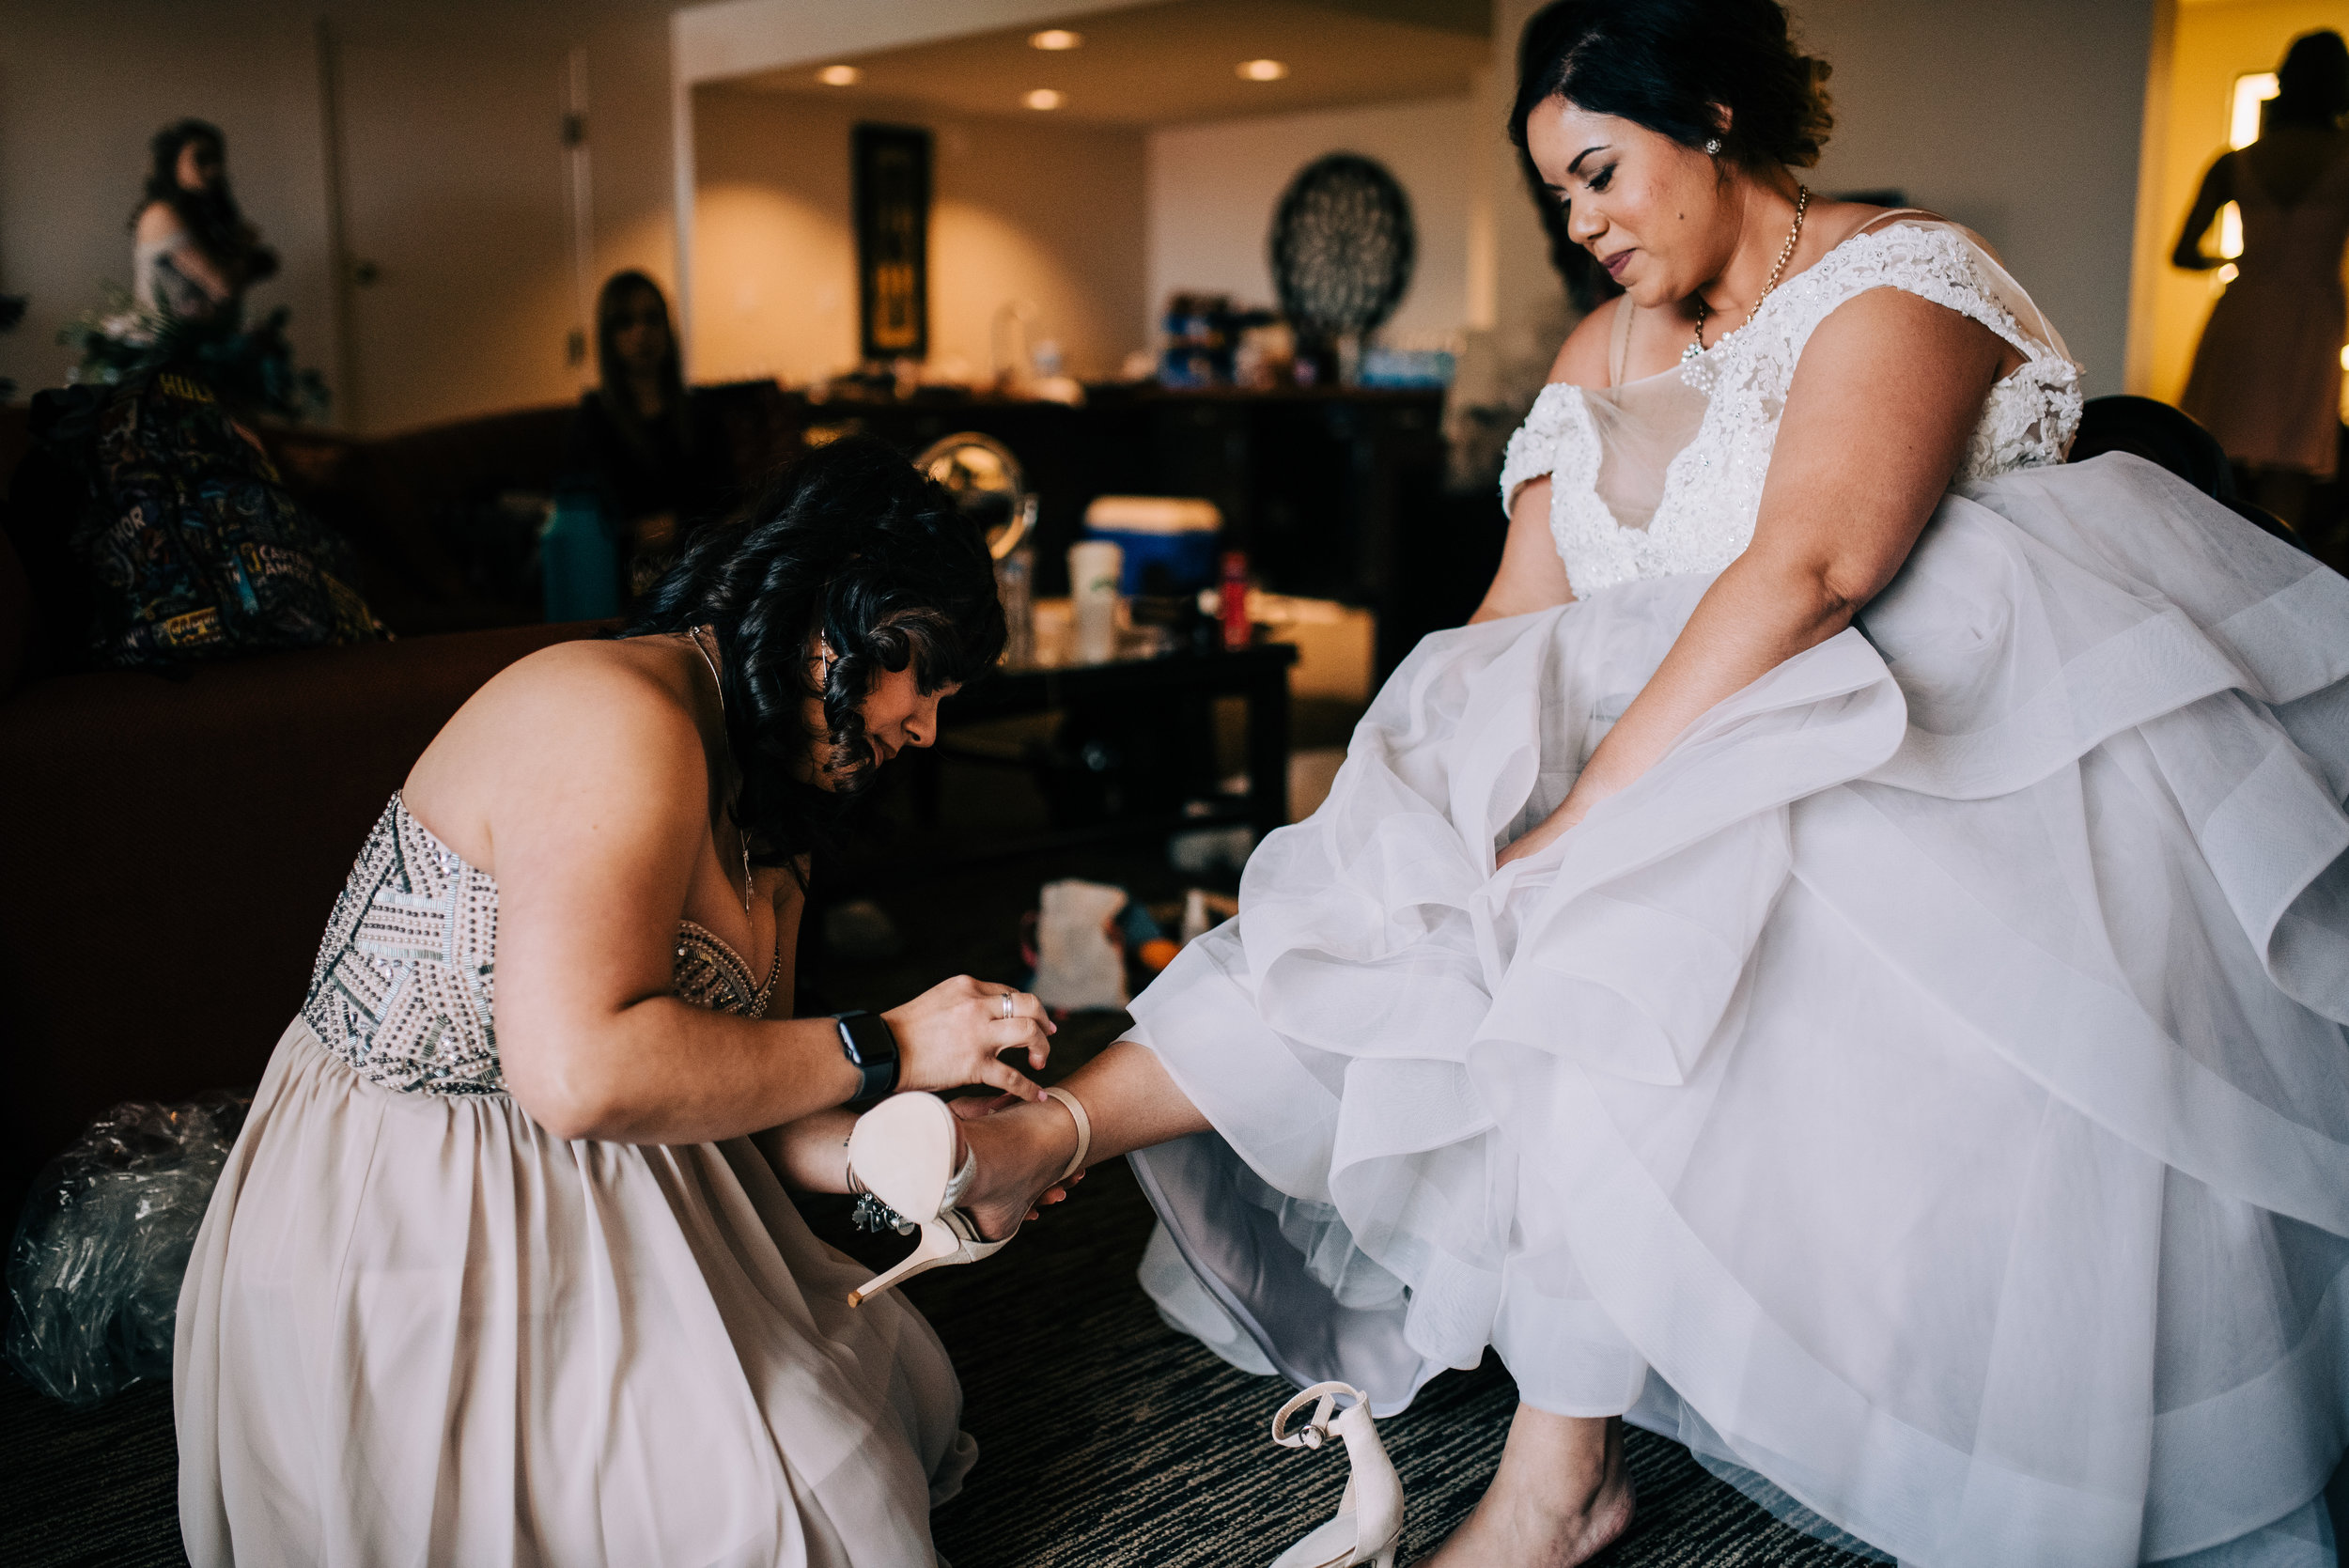 6 maid of honor help bride blush wedding dress bride shoes wedding shoes bride get ready Life Design Events photos by Josh Snyder Photography.jpg